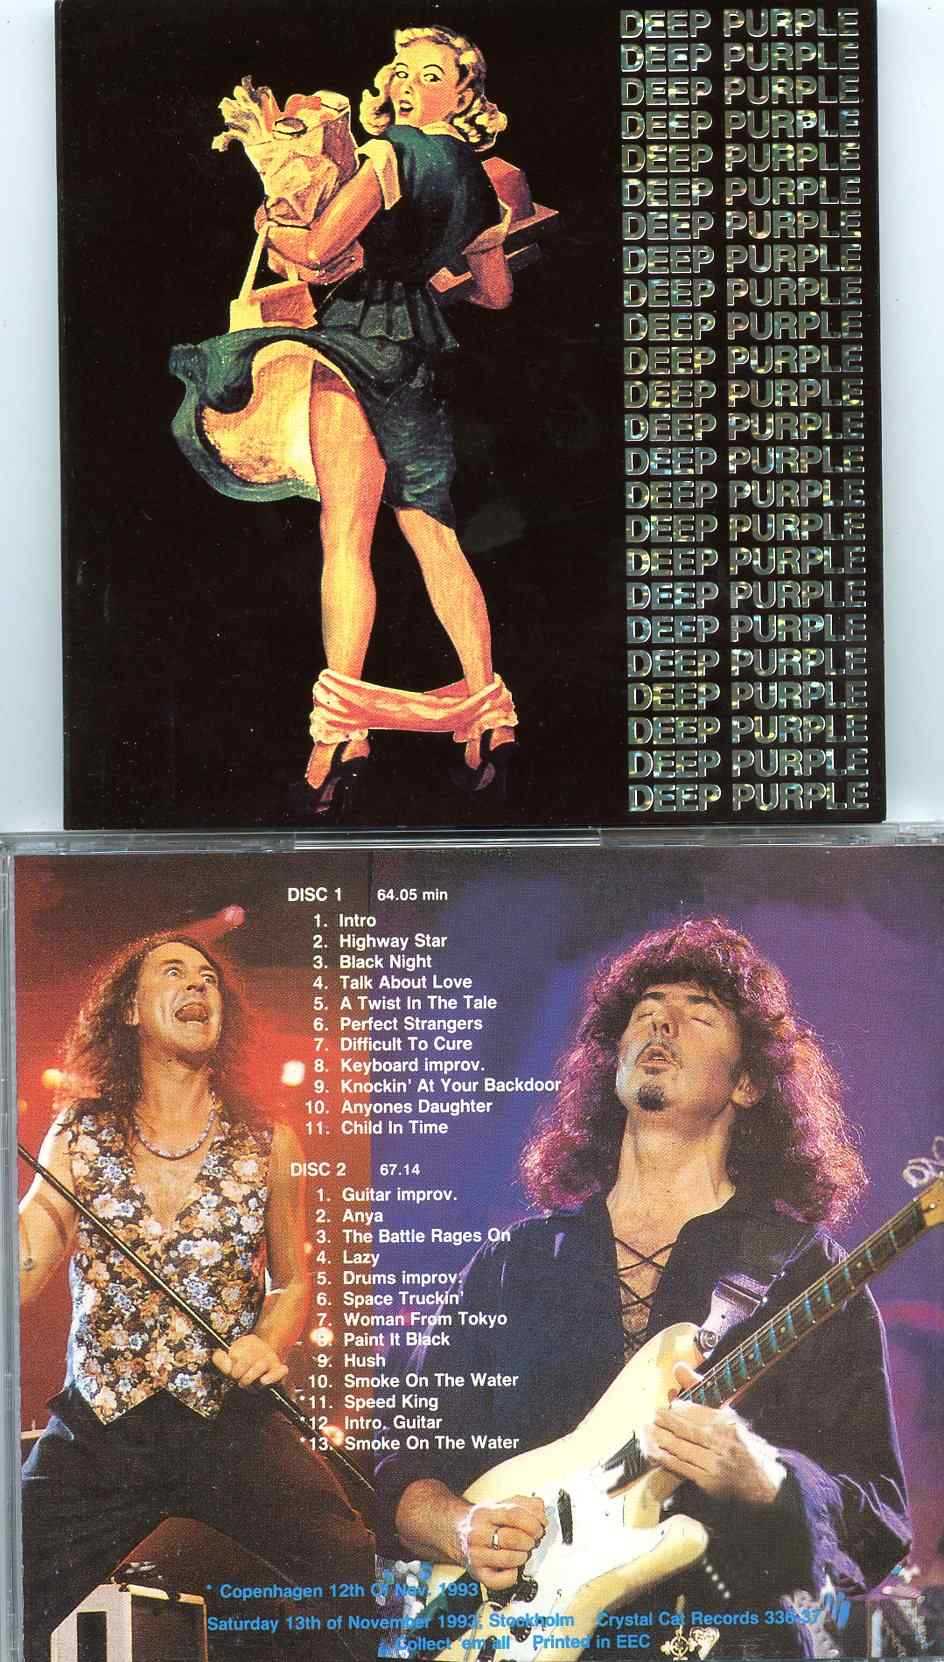 Deep Purple- In Your Trousers ( 2 CD SET ) ( Crystal Cat ) ( Copenhagen and Stockholm , Nov 12th and 13th , 1993 )